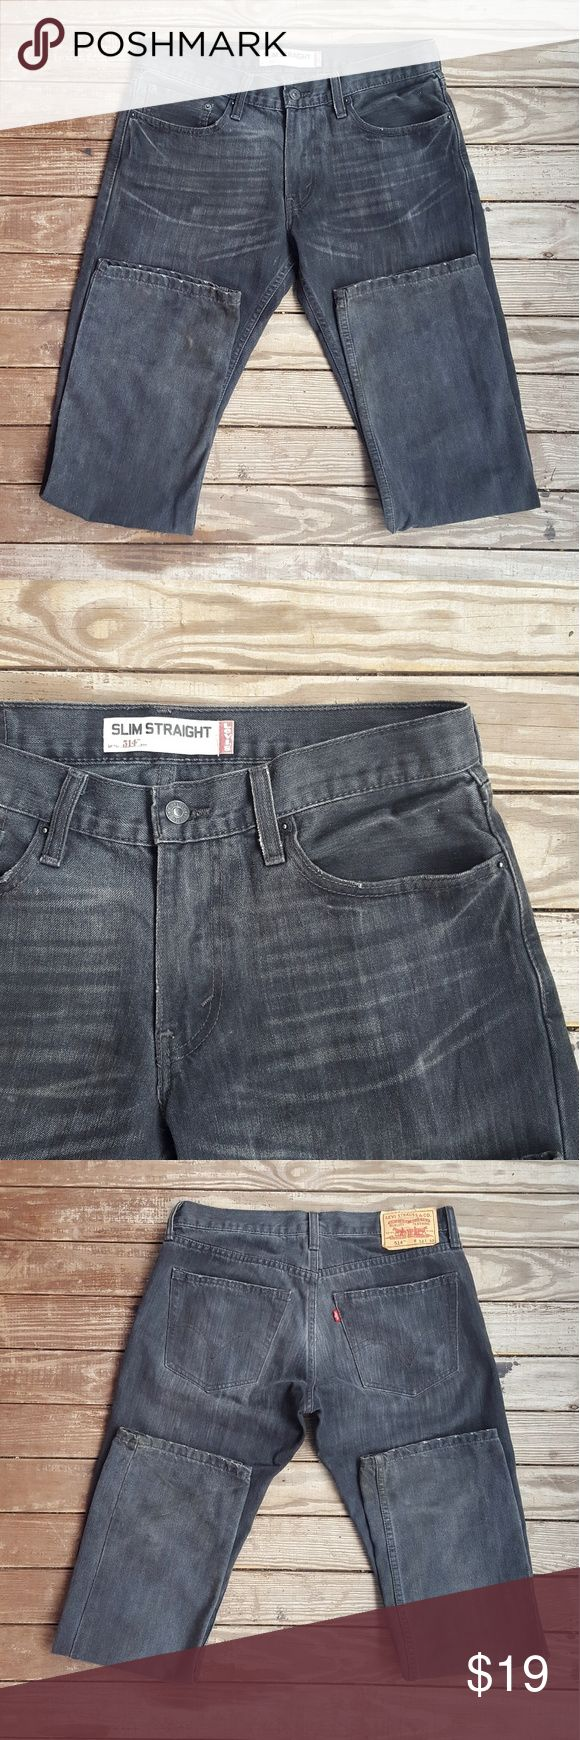 BLOWOUT SALE | Levi's 514 Slim Straight Jeans A great pair of distressed Levi's!   Size 32 × 32  Style 514 Slim Straight  Color Grey Distressed, subtle discoloration throughout  Open to Offers. Fast Shipping. Xo Levi's Jeans Slim Straight